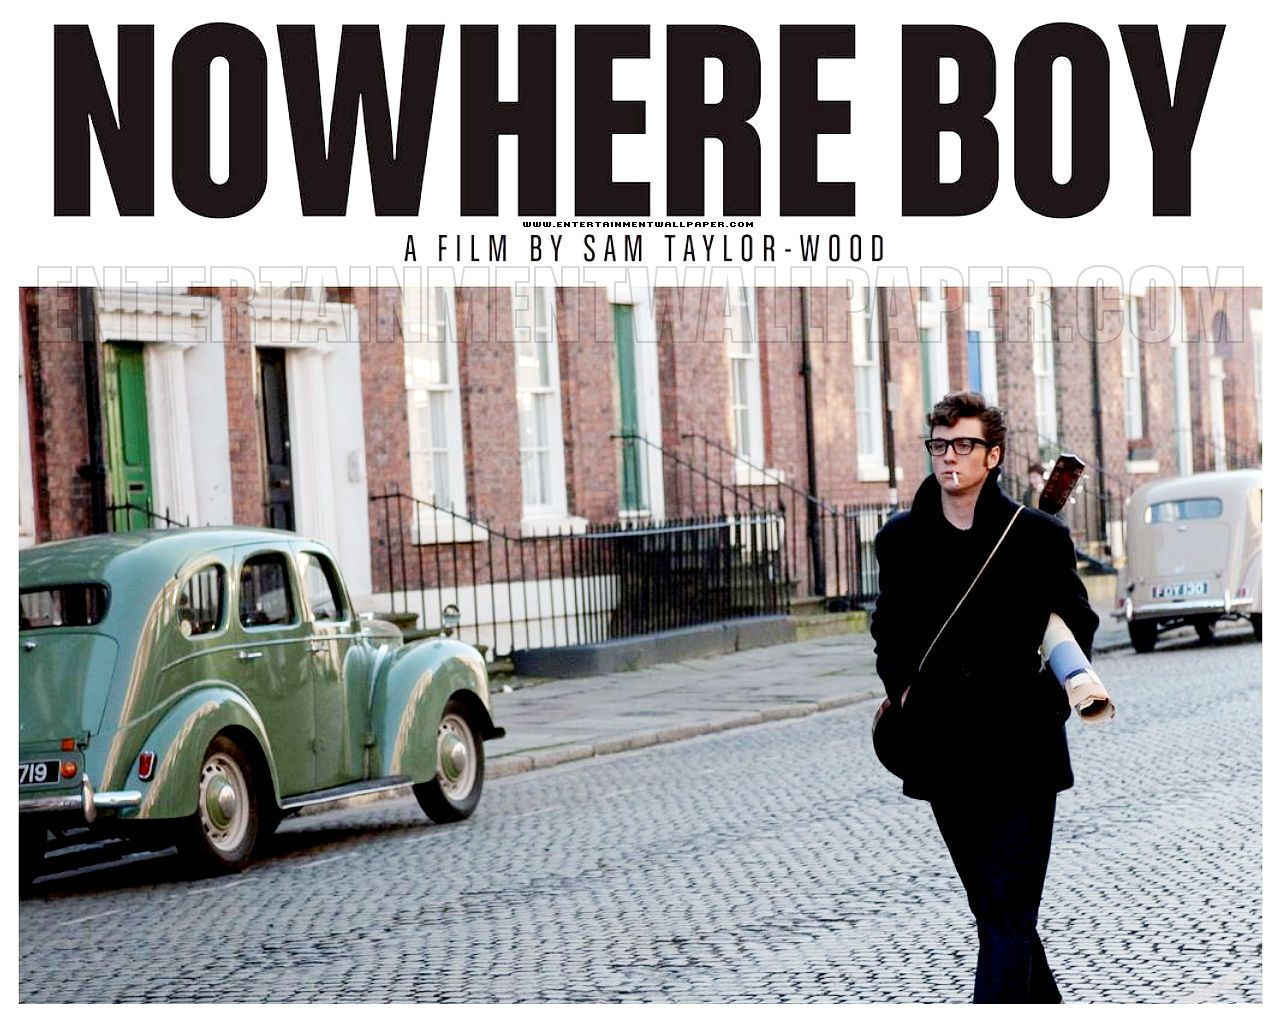 WONDERFUL film about the life of a young John Lennon, right before The Beatles!